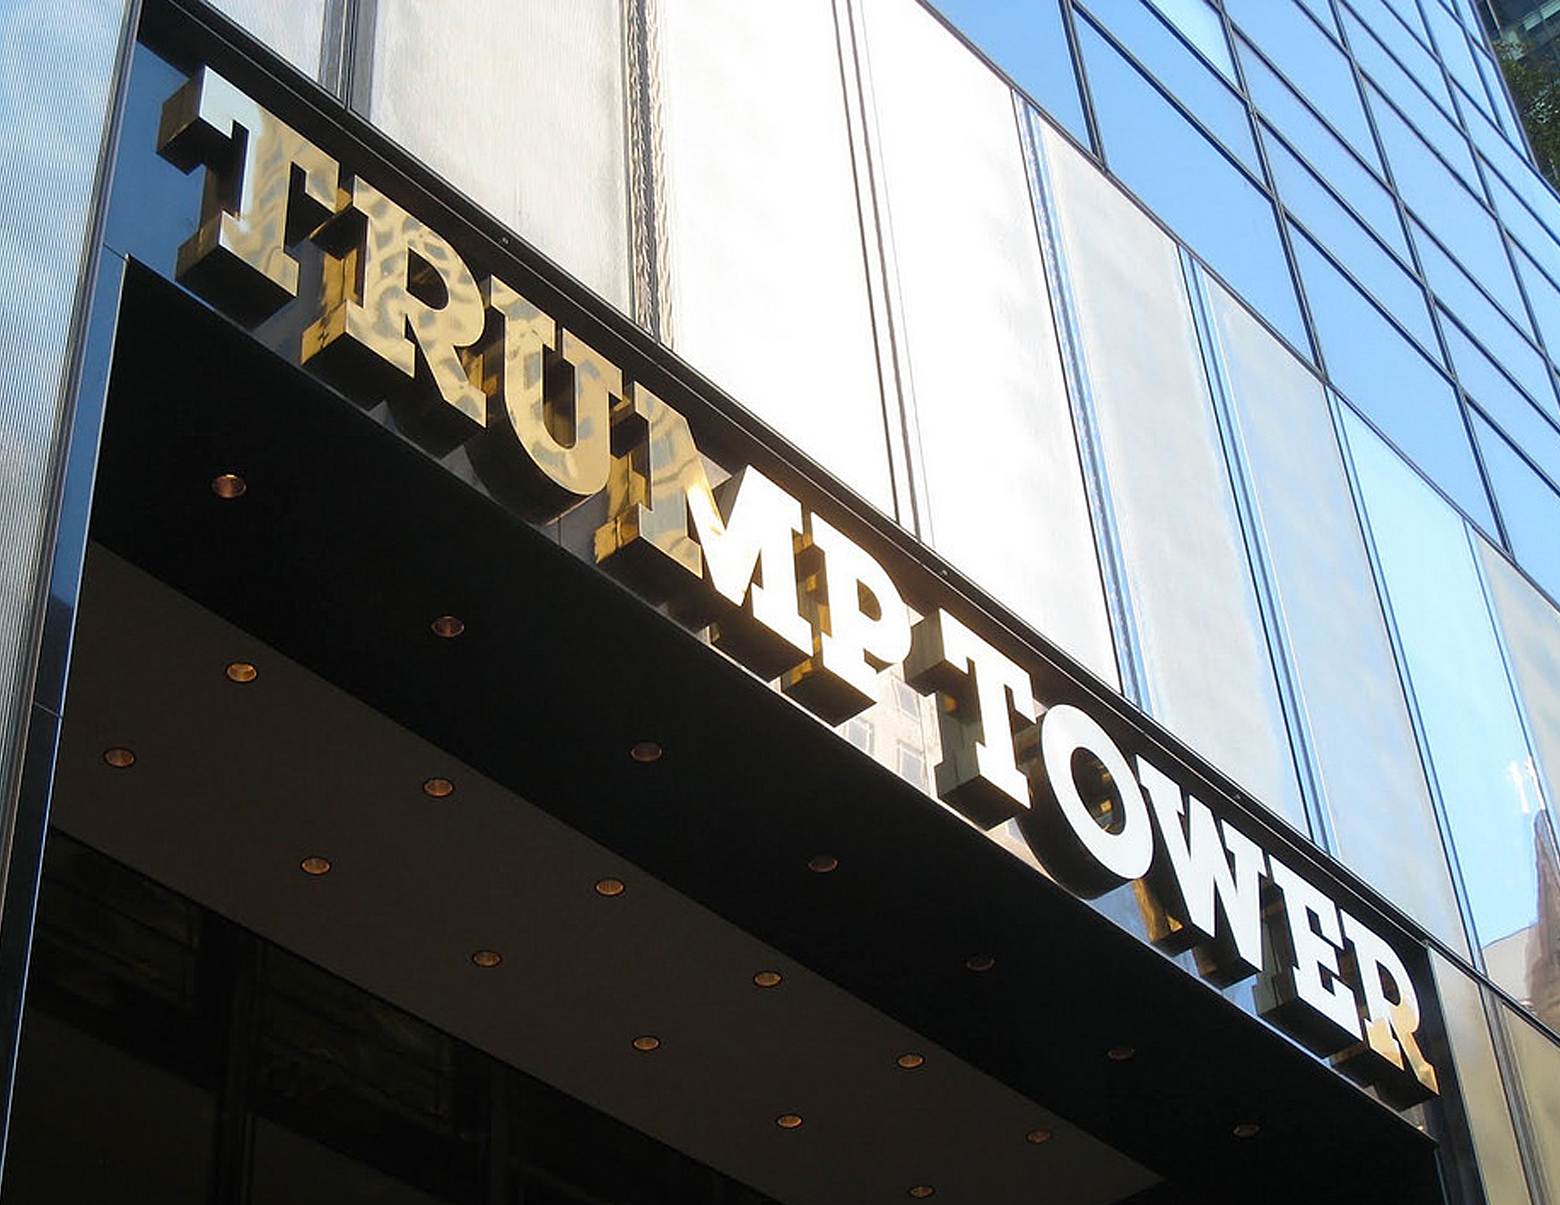 False alarm bomb alert sparks panic at Trump Tower